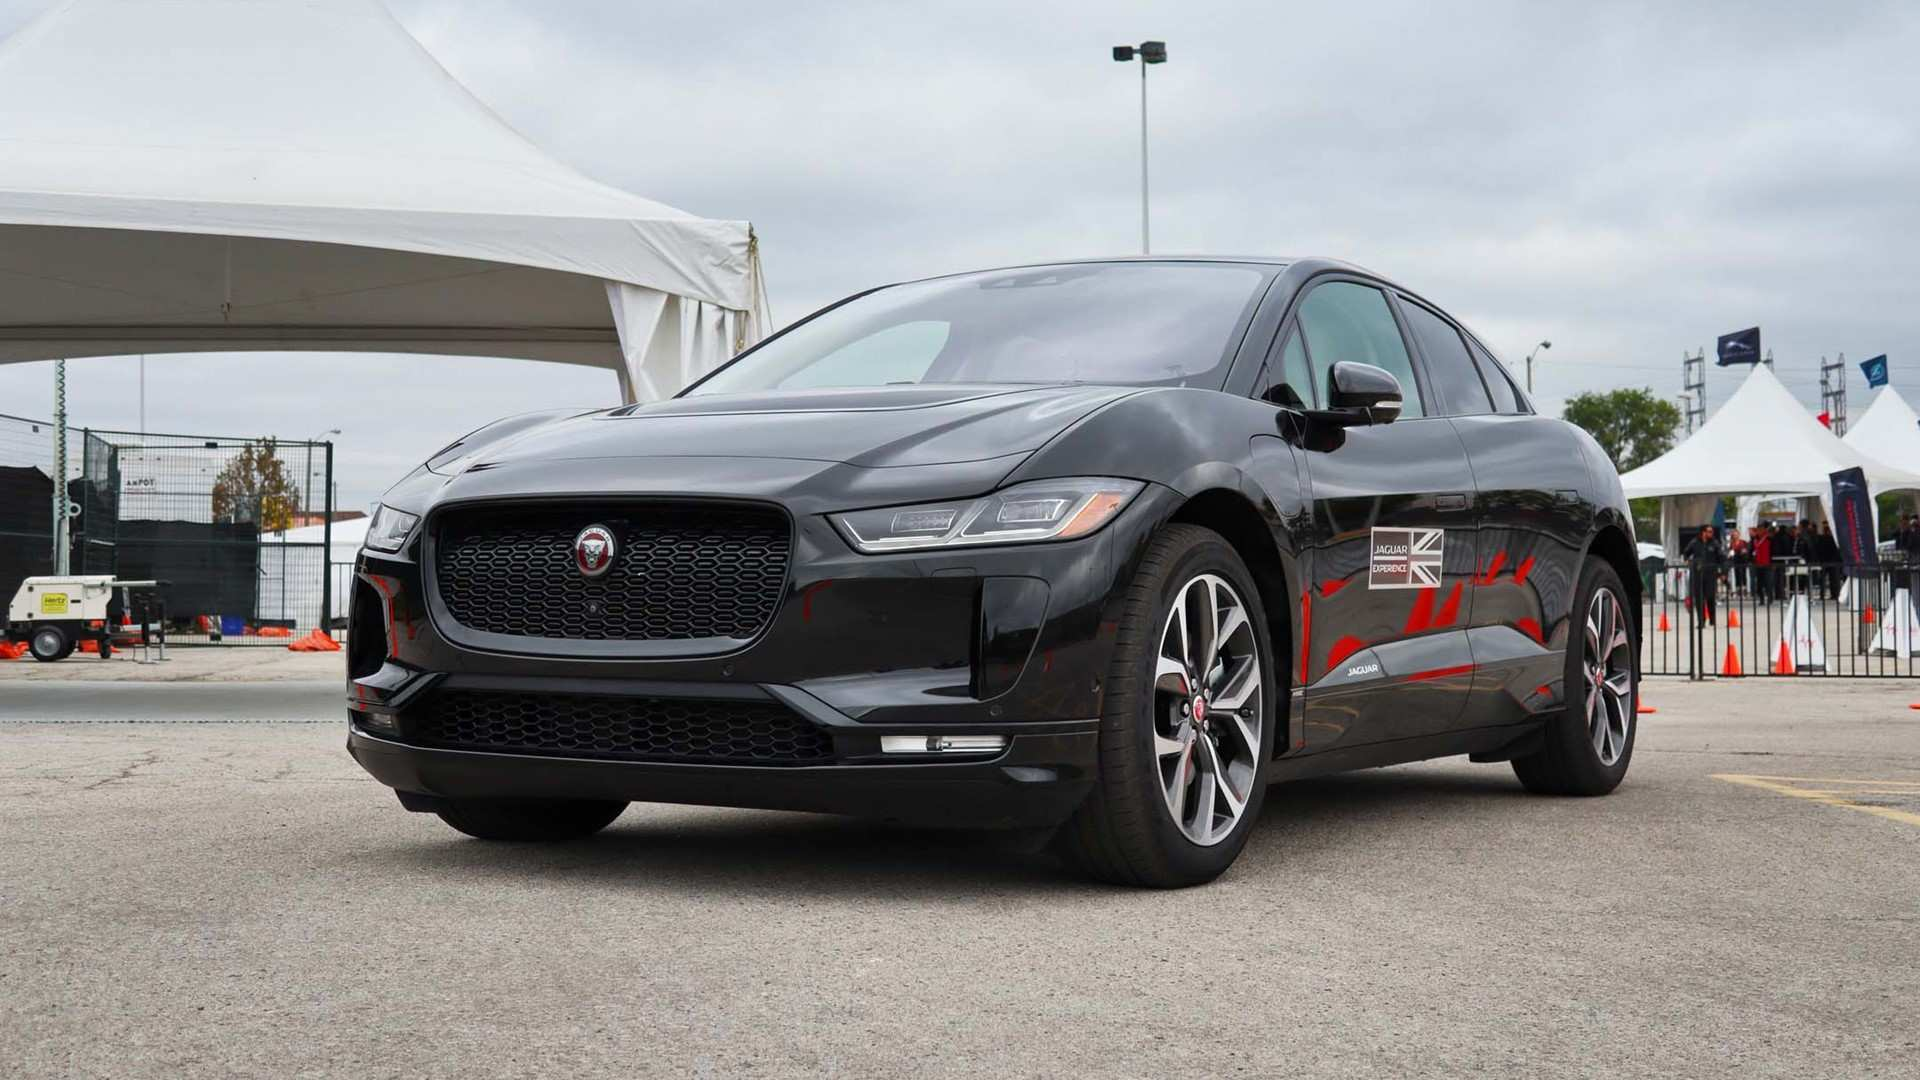 26 Great 2019 Jaguar I Pace Review History with 2019 Jaguar I Pace Review